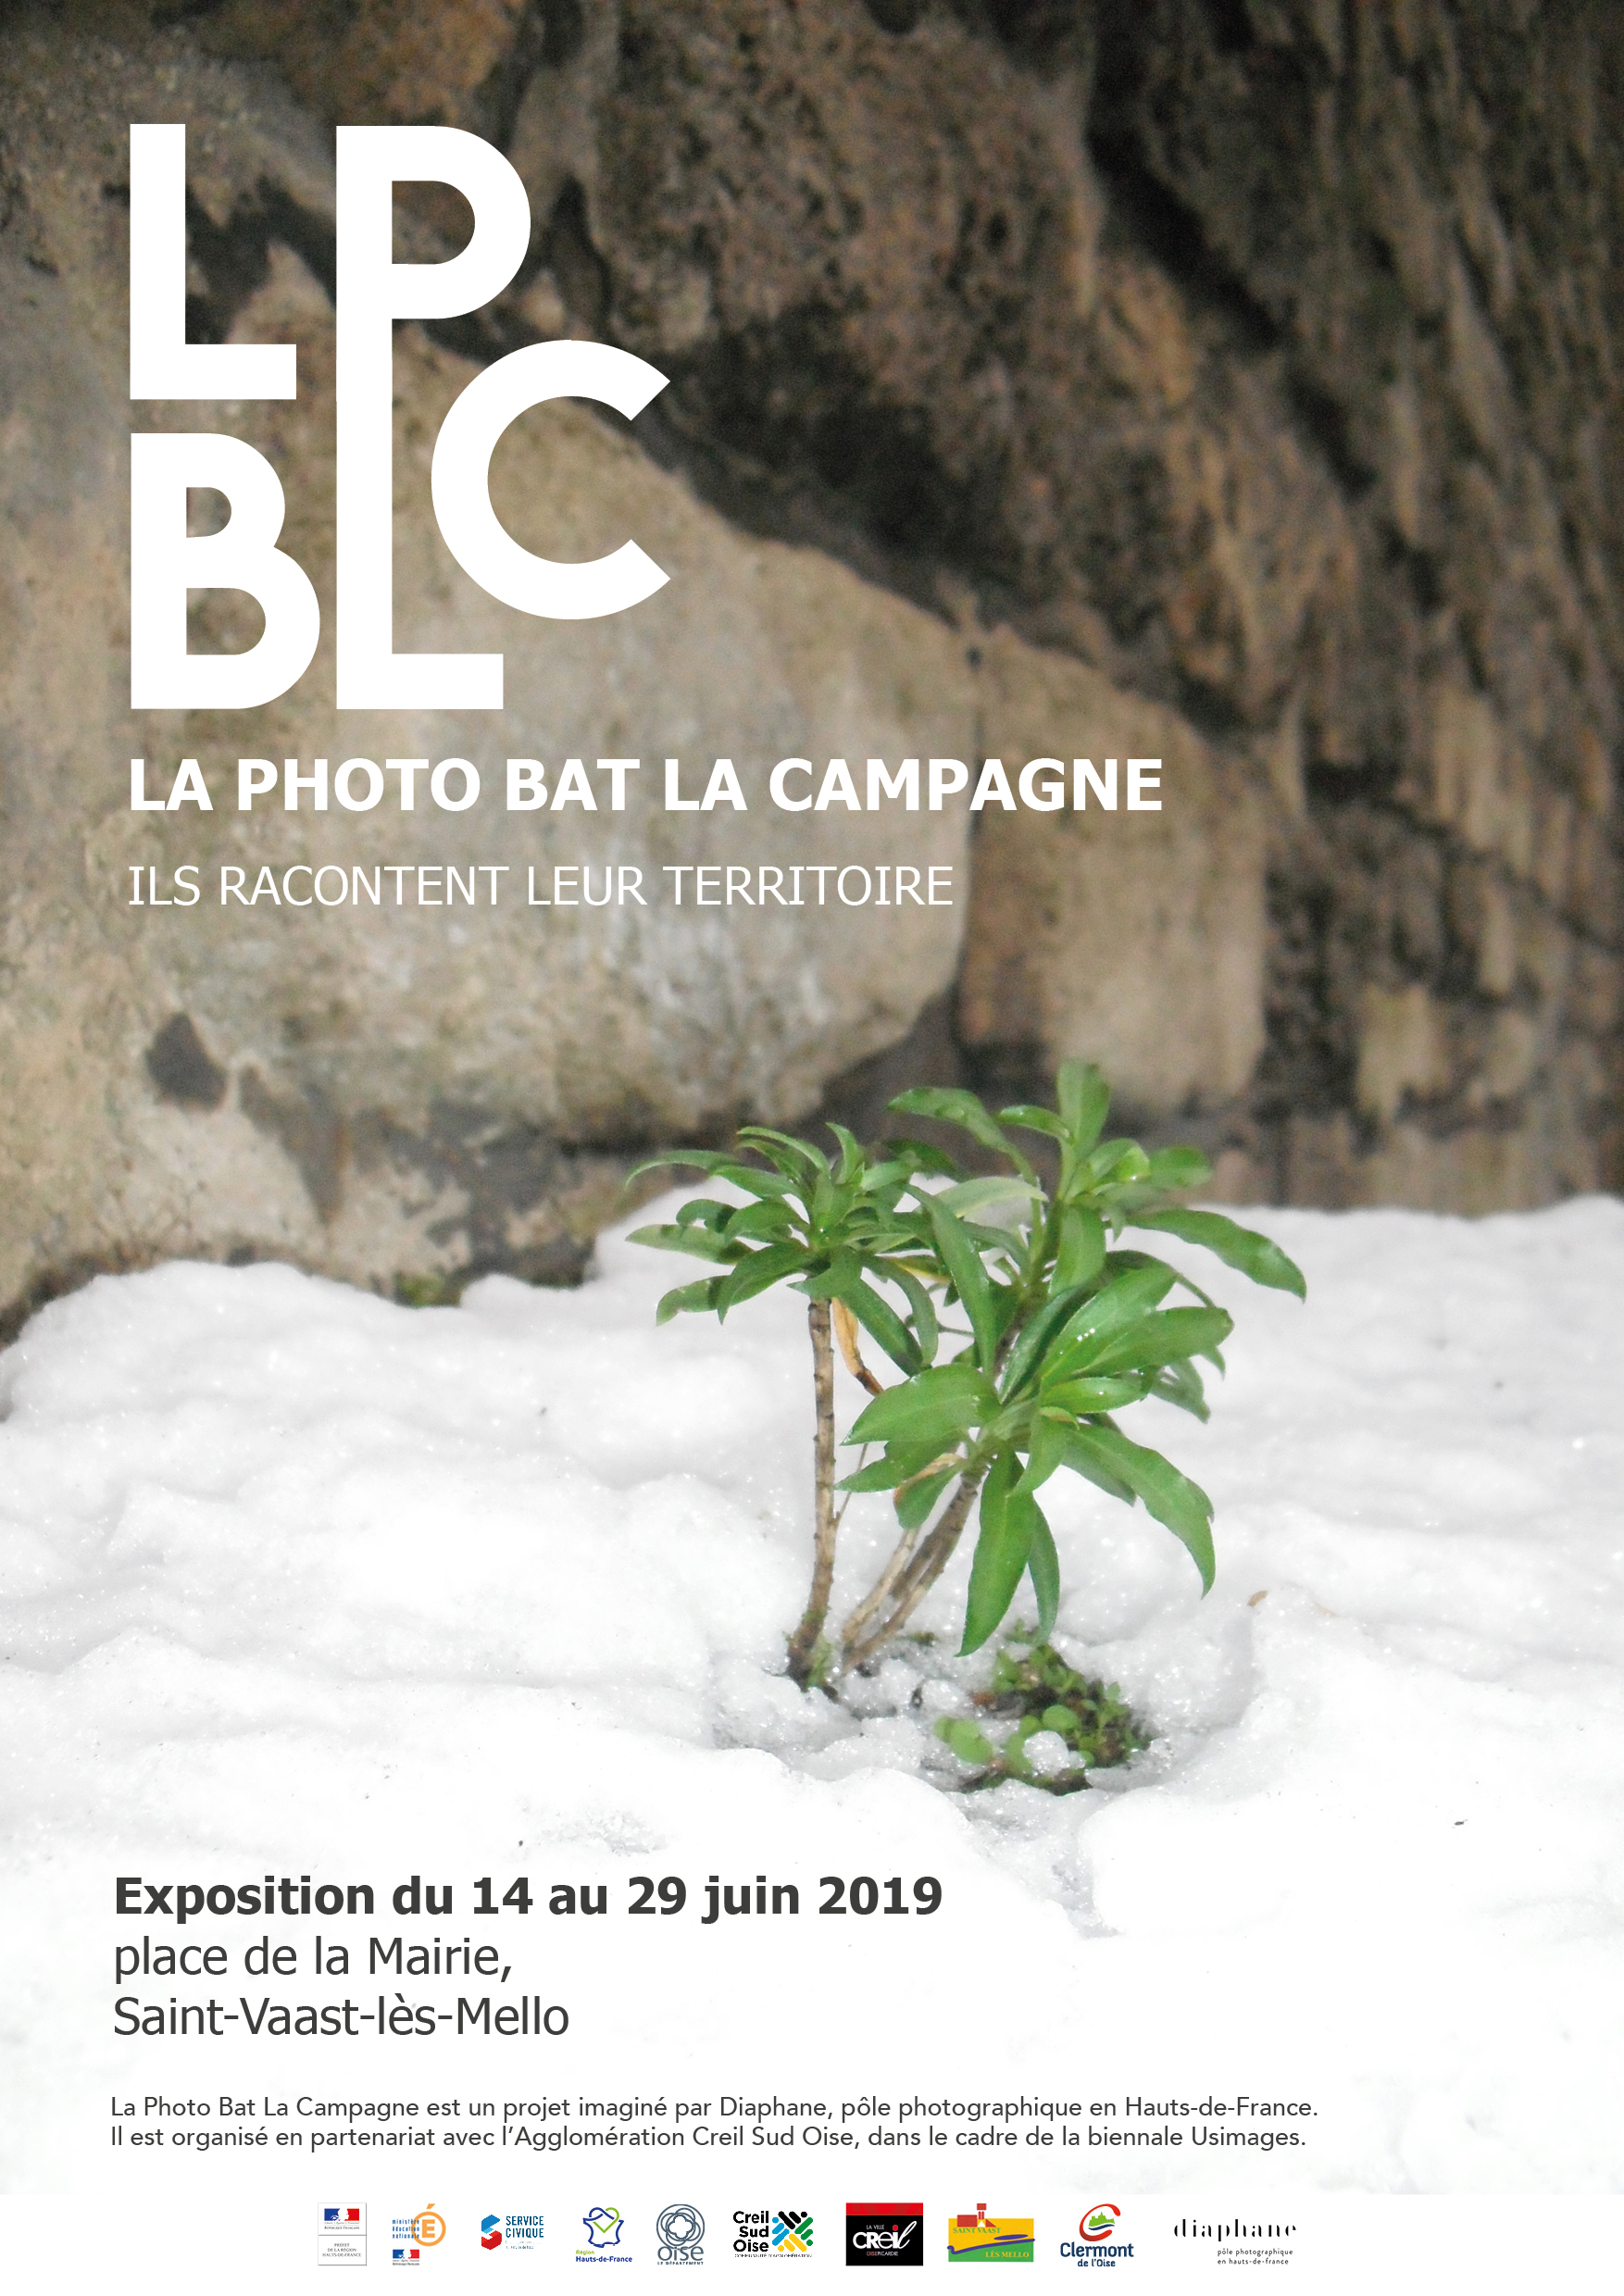 La Photo Bat La Campagne 2019